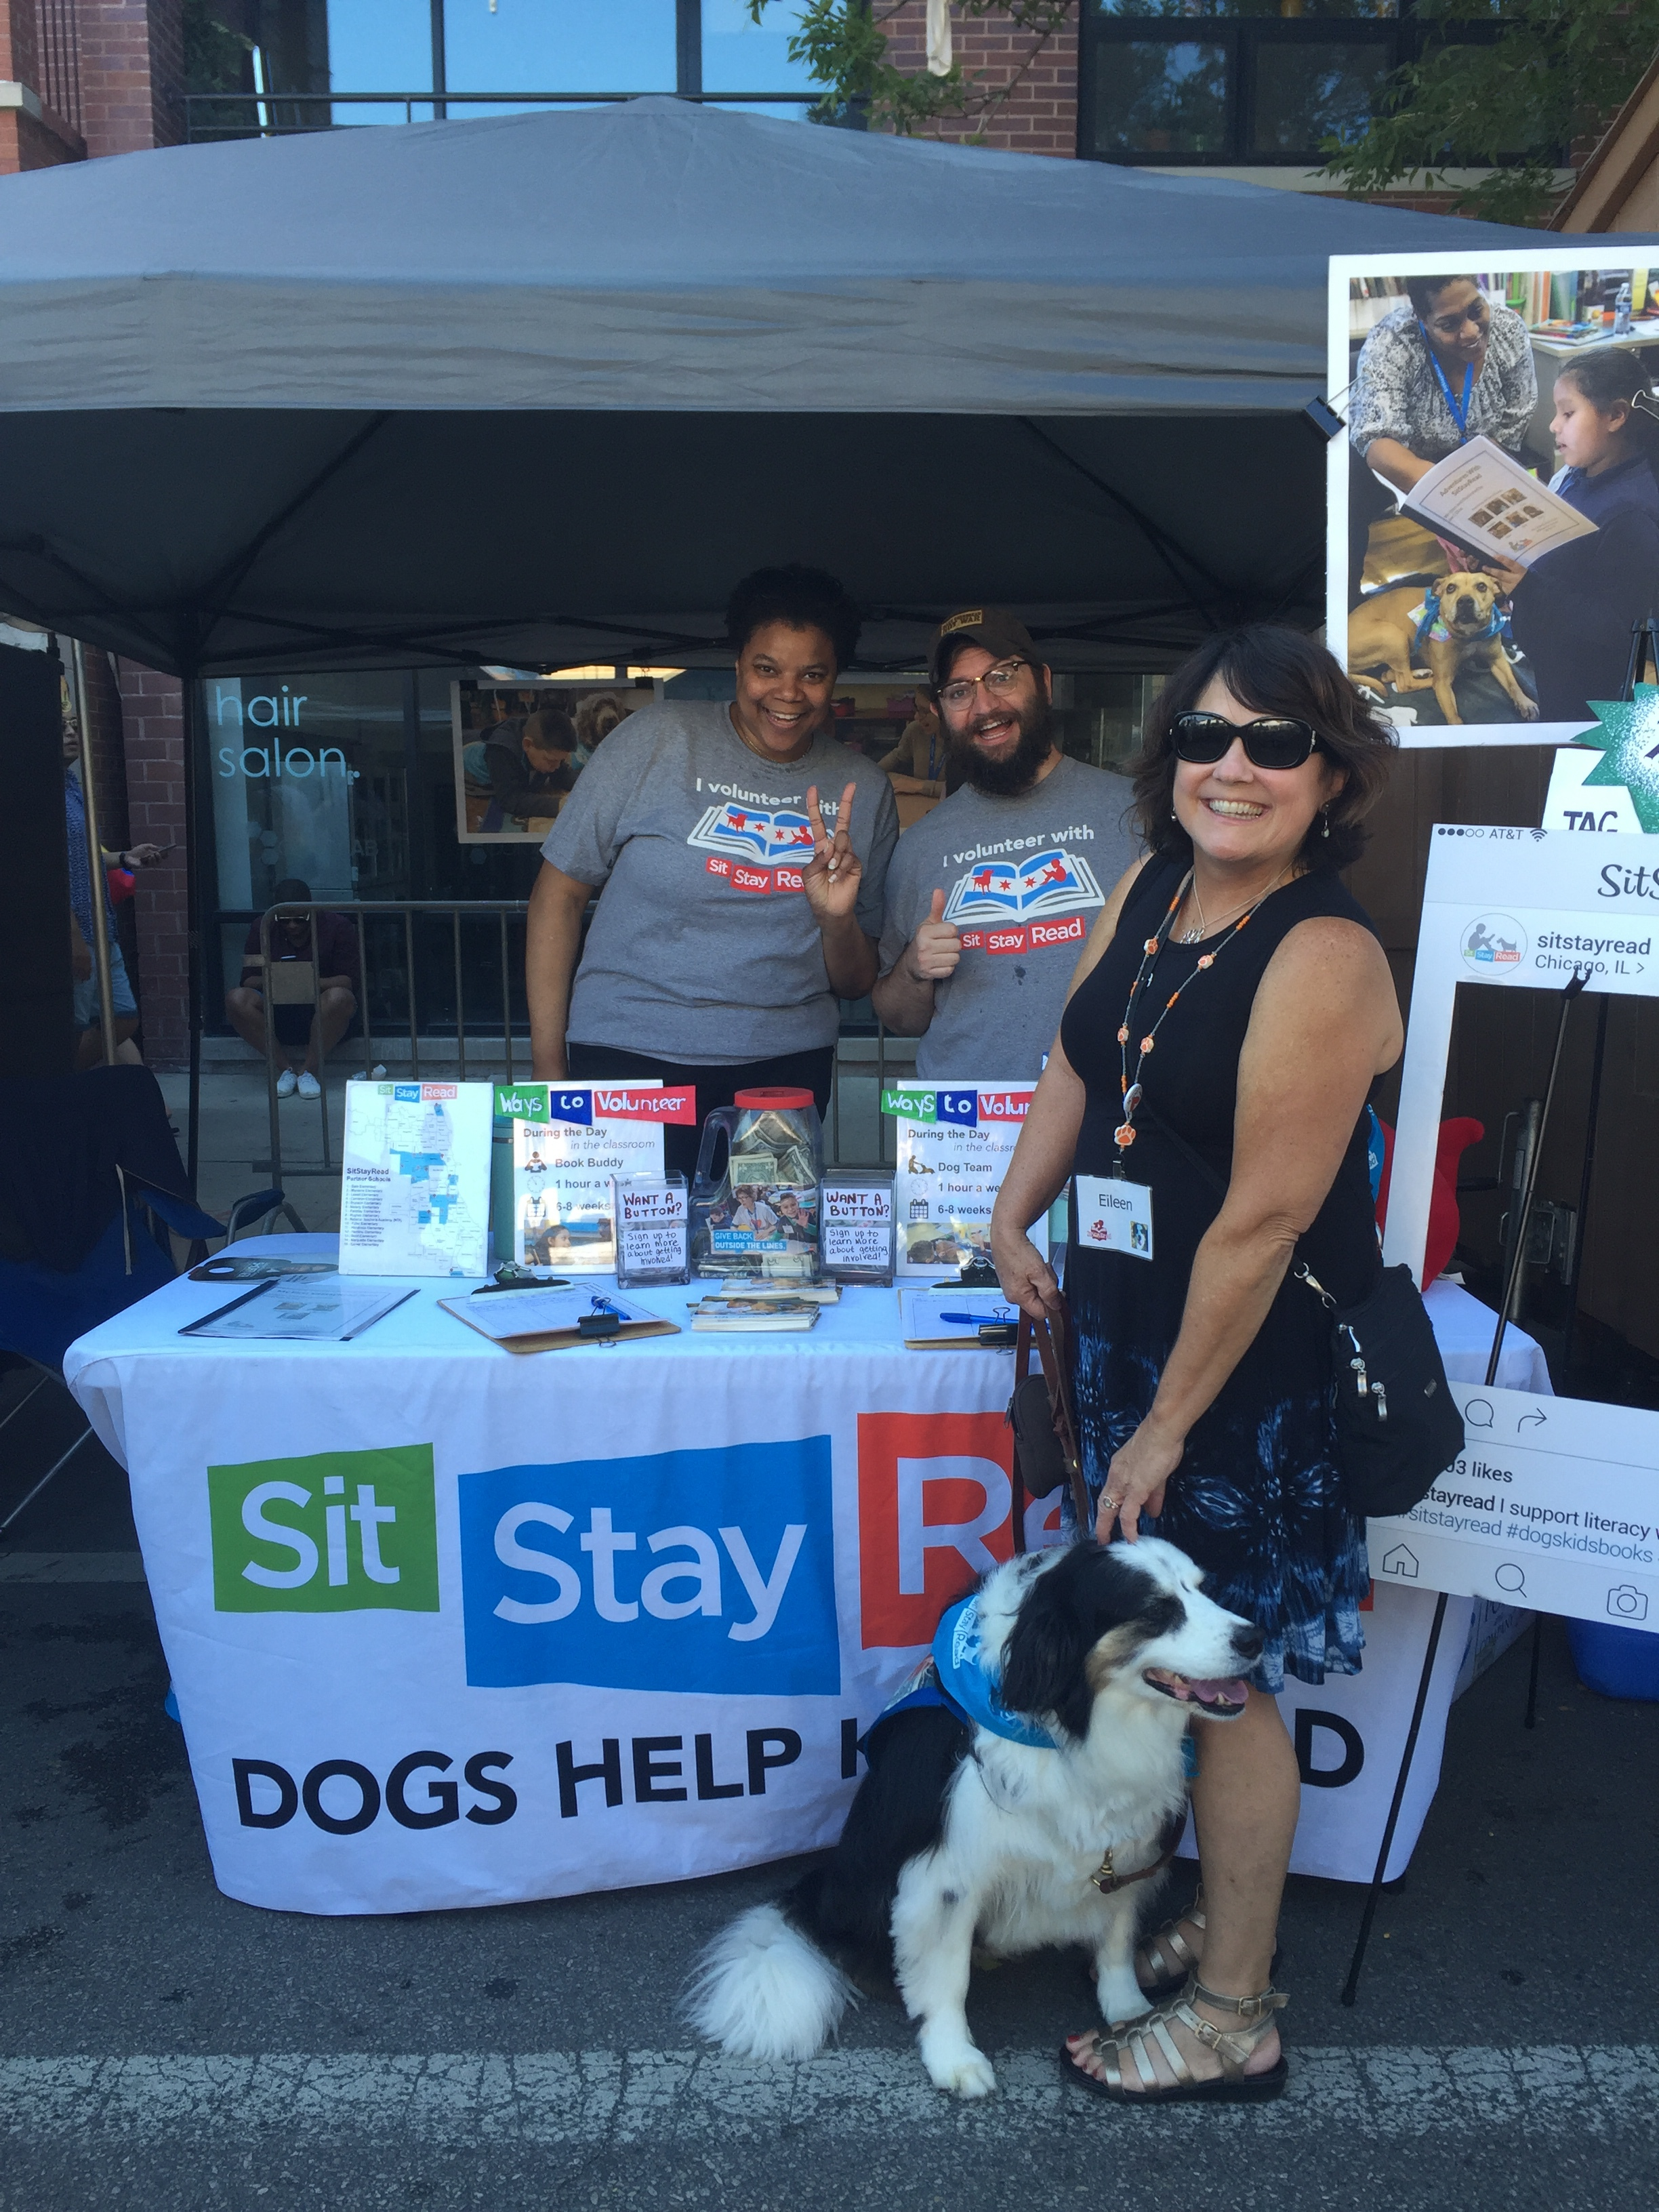 Event volunteers Adrienne and Jeff and Dog Team Eileen and Bandit pose in front of the SitStayRead booth at Market Days. (V. Luisi)